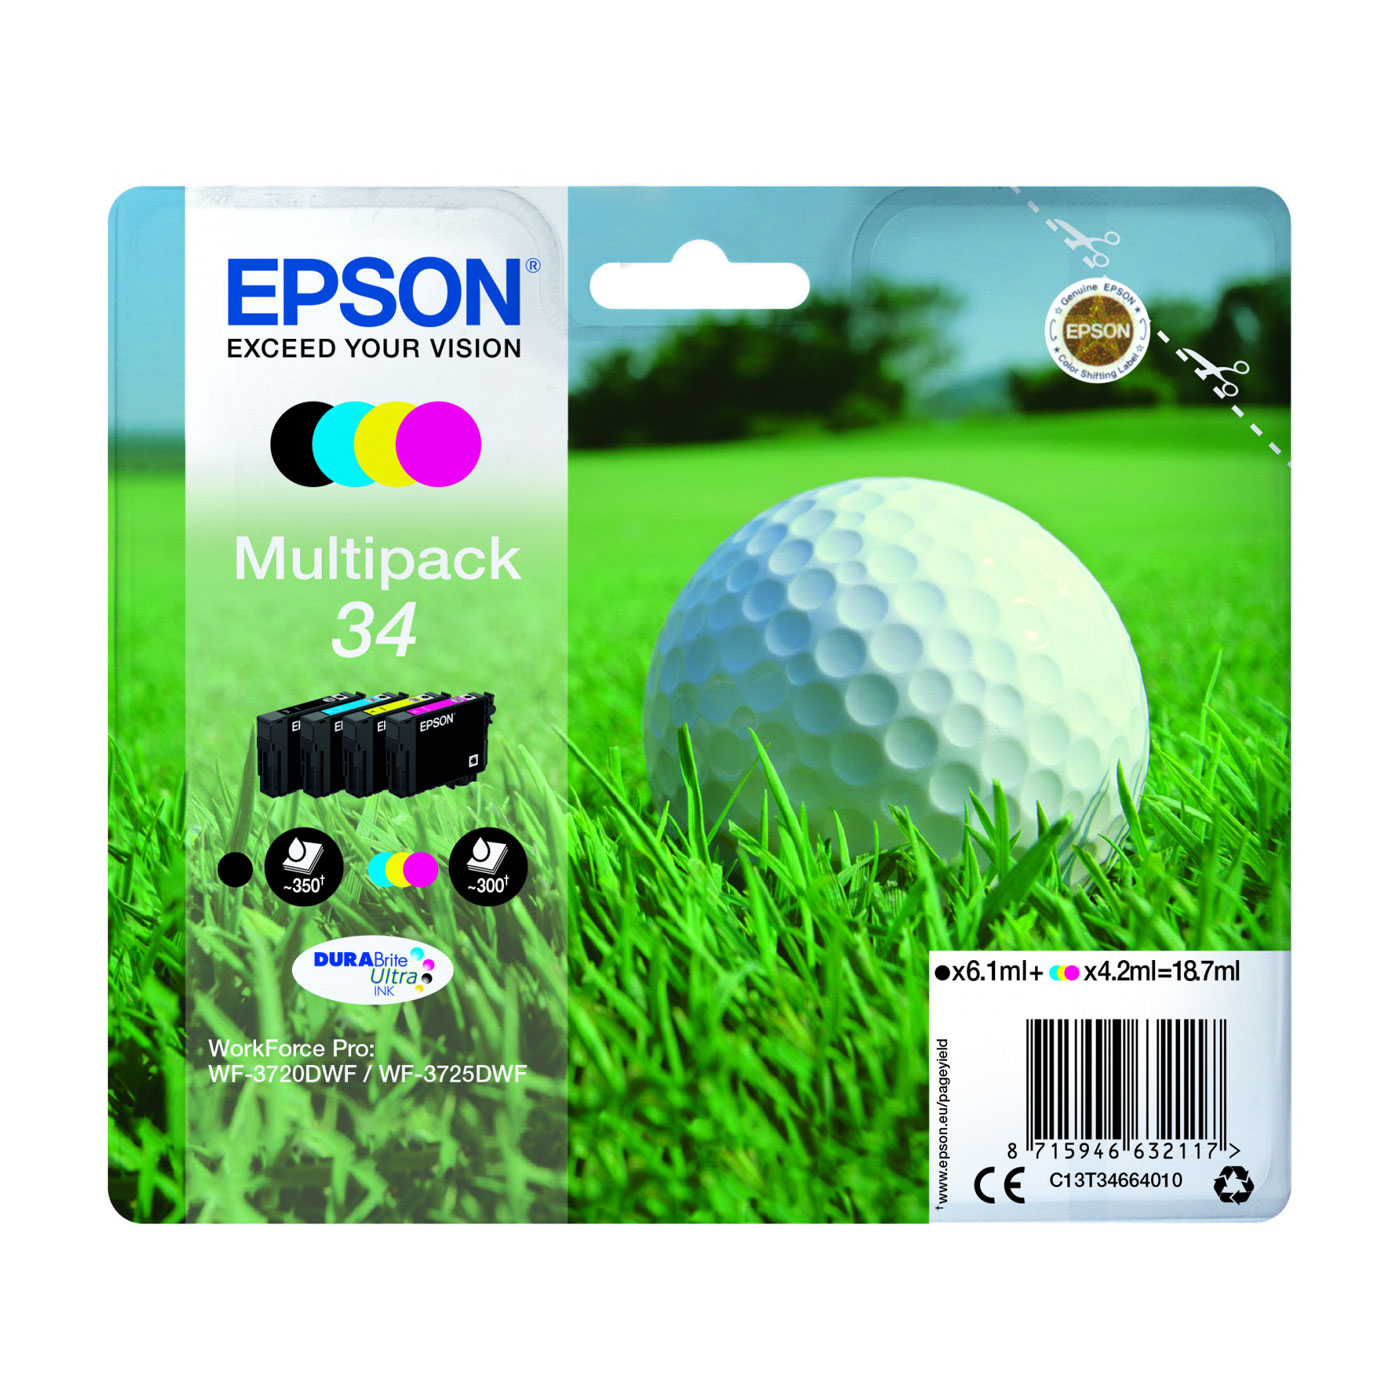 epson balle de golf multipack 34 cartouche imprimante. Black Bedroom Furniture Sets. Home Design Ideas